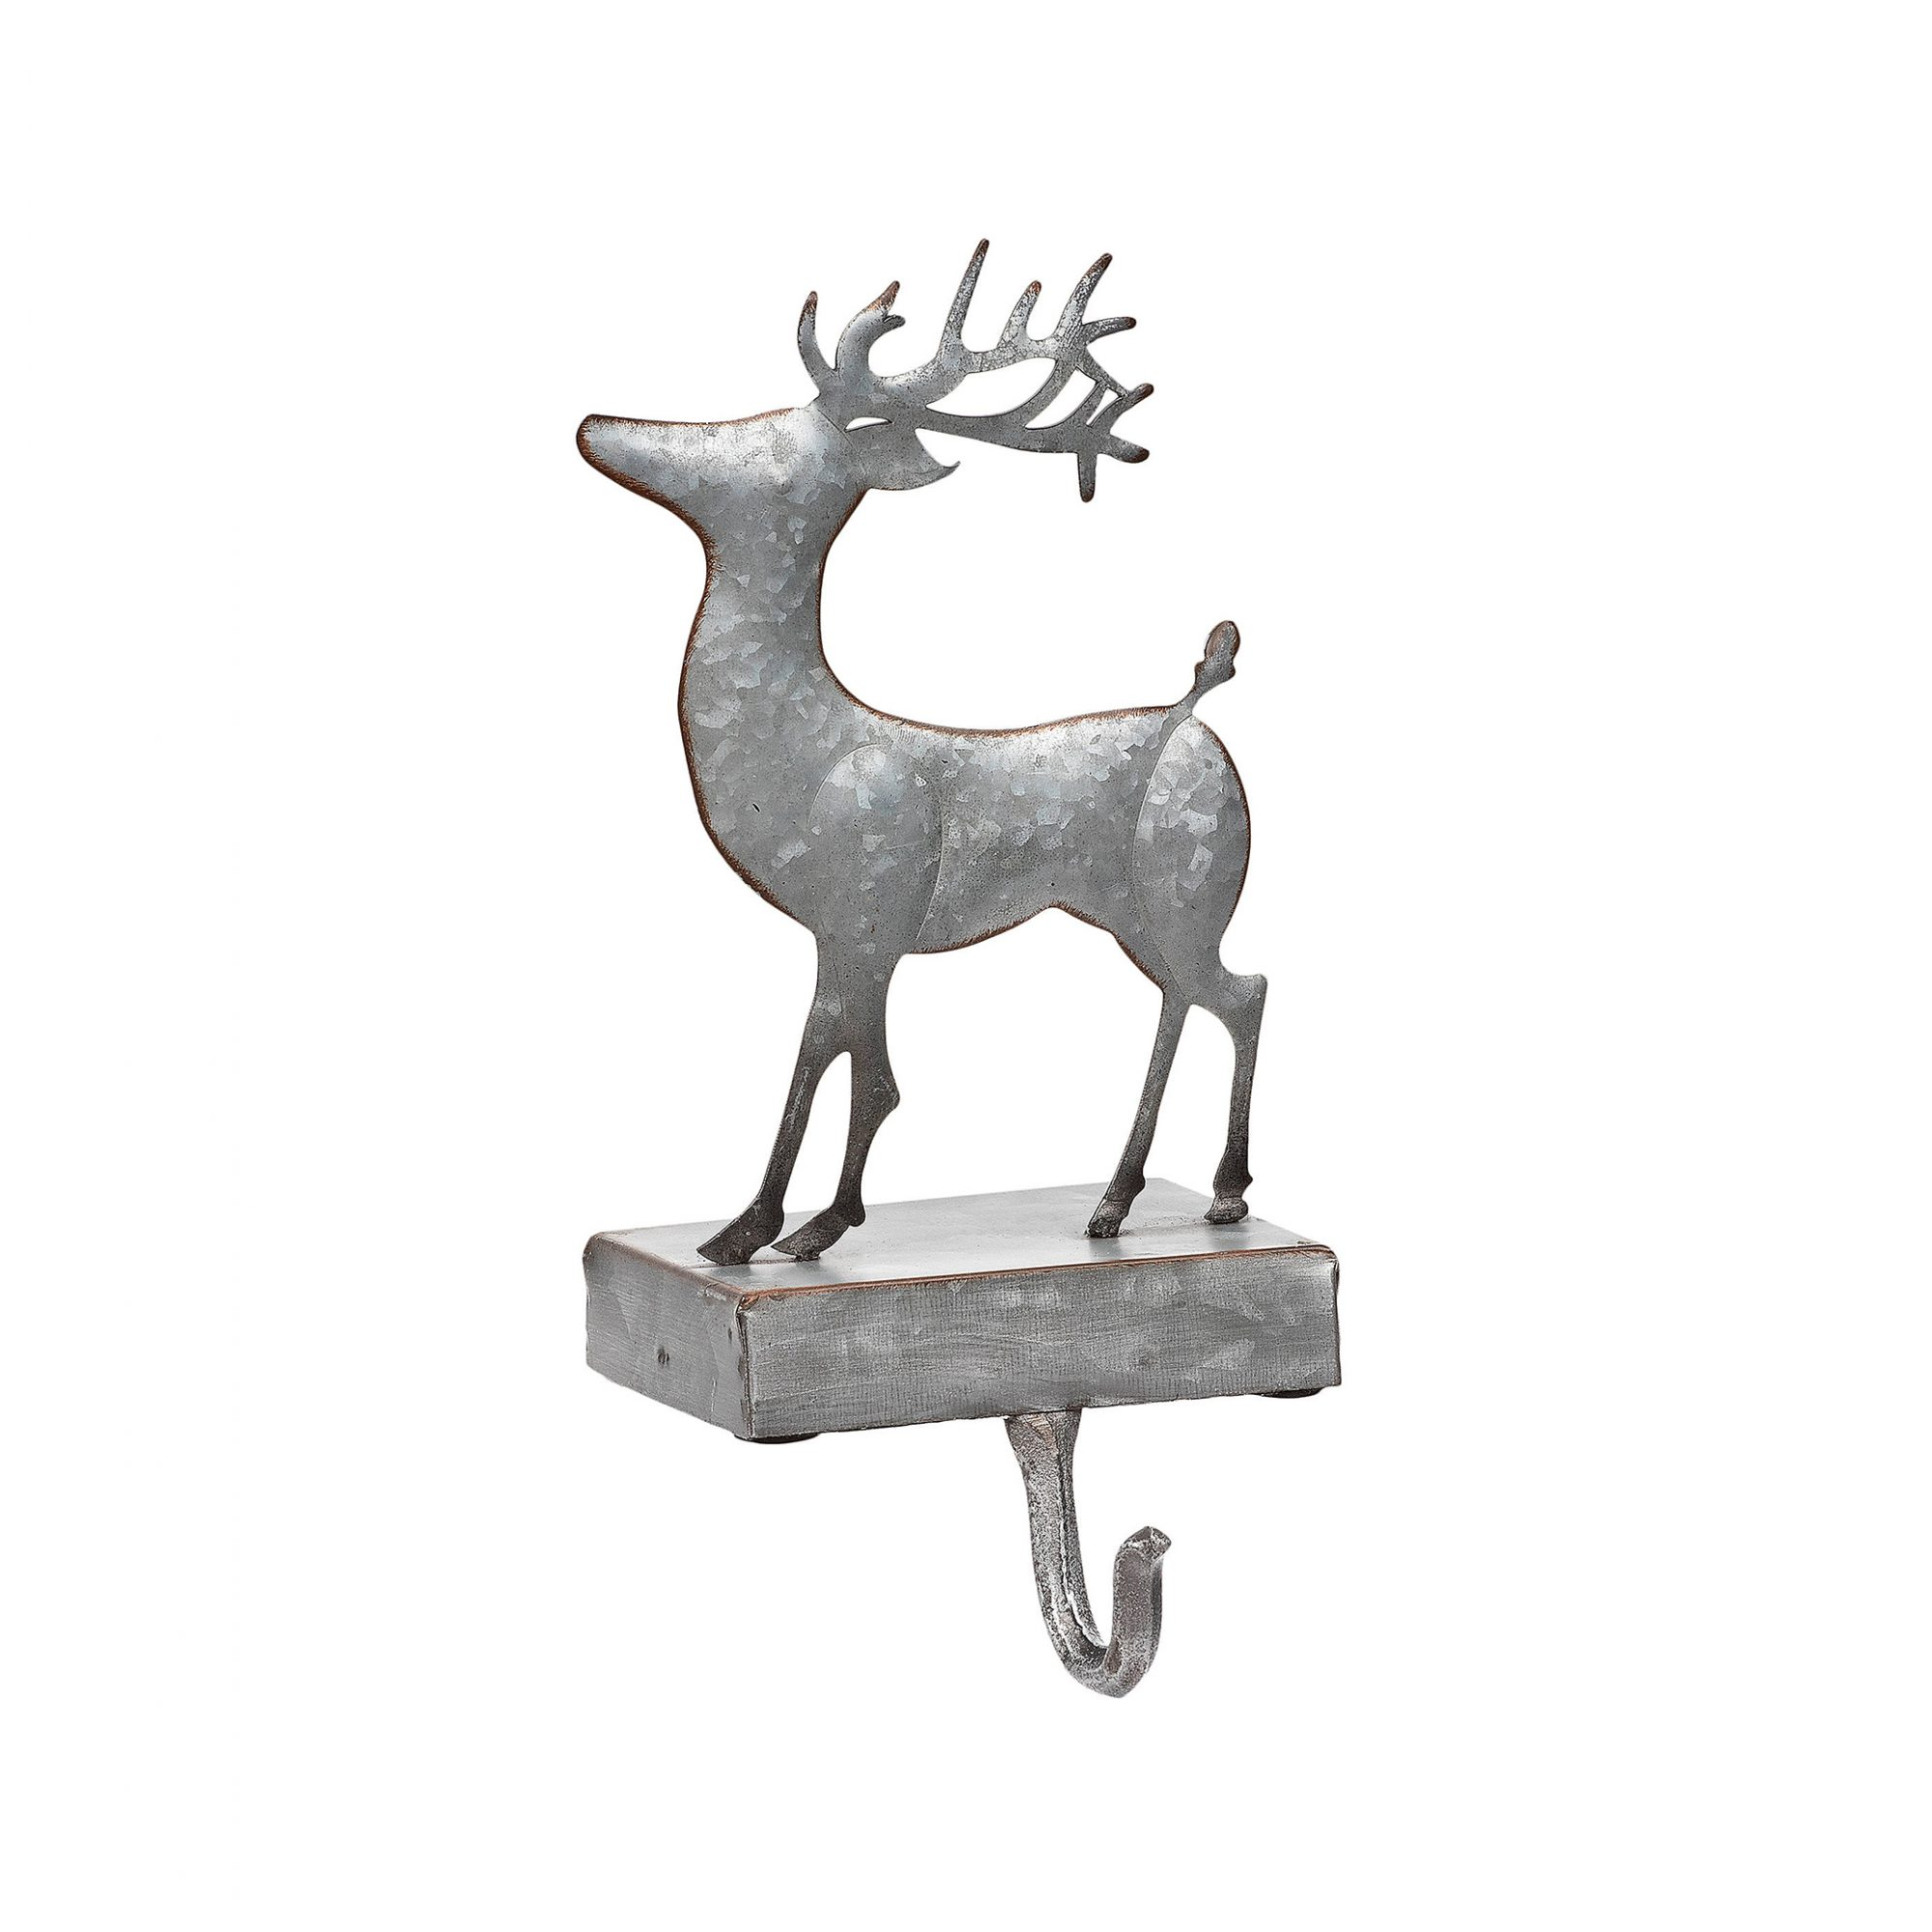 Christmas stocking holders - Kirkland's Metal Deer Stocking Holder